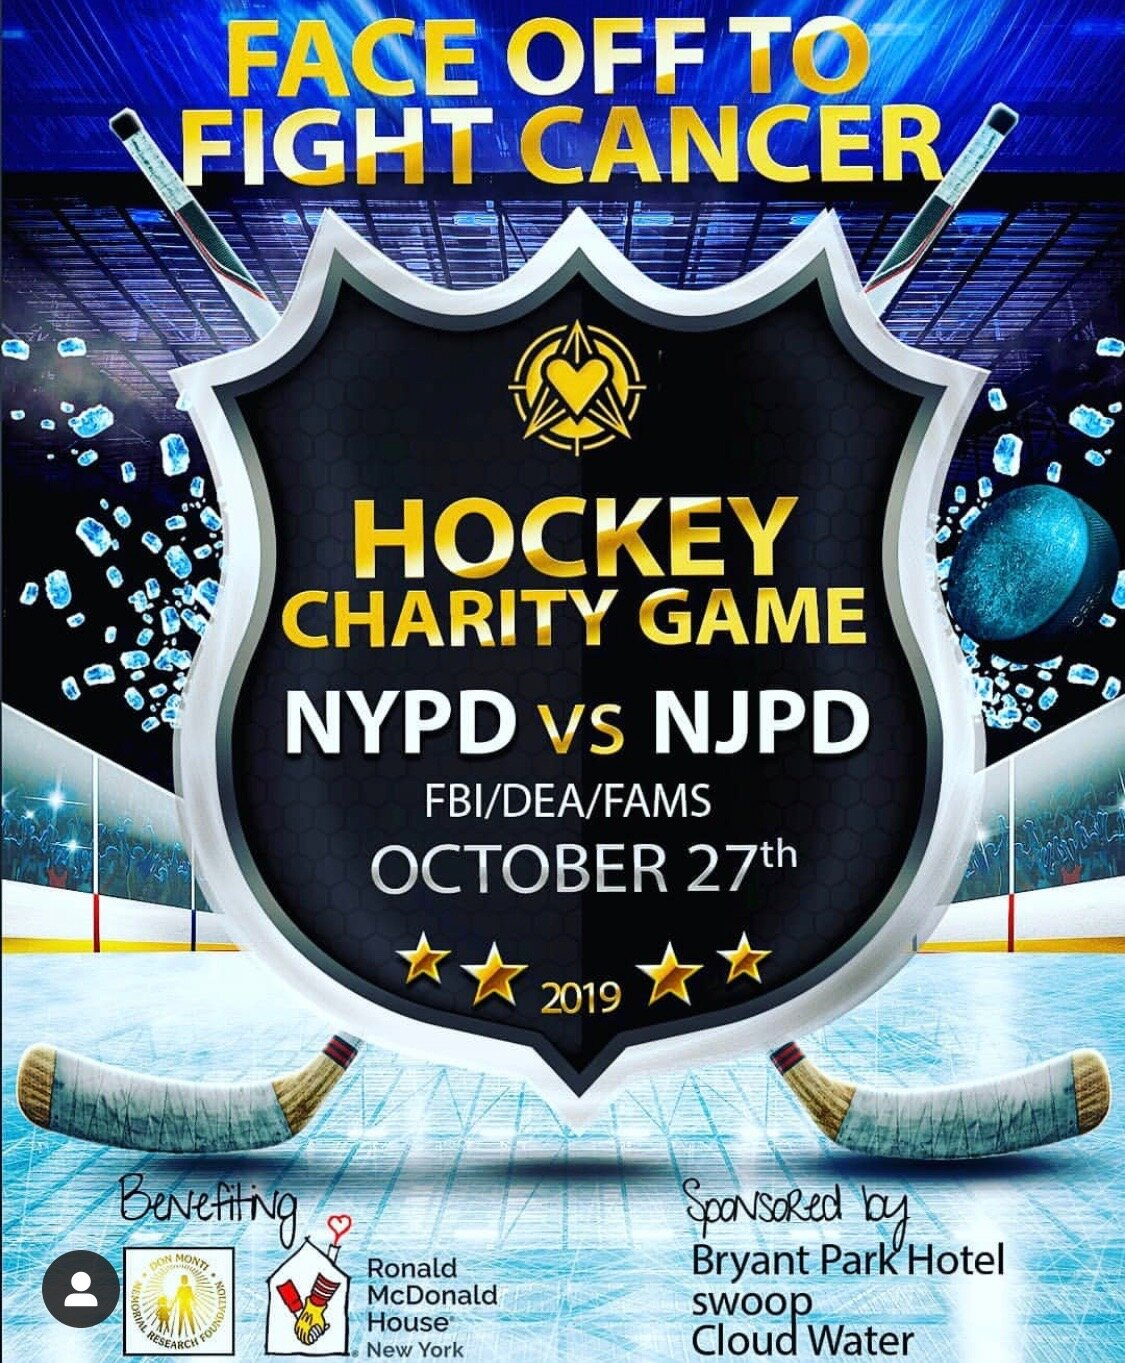 FACE OFF TO FIGHT CANCER